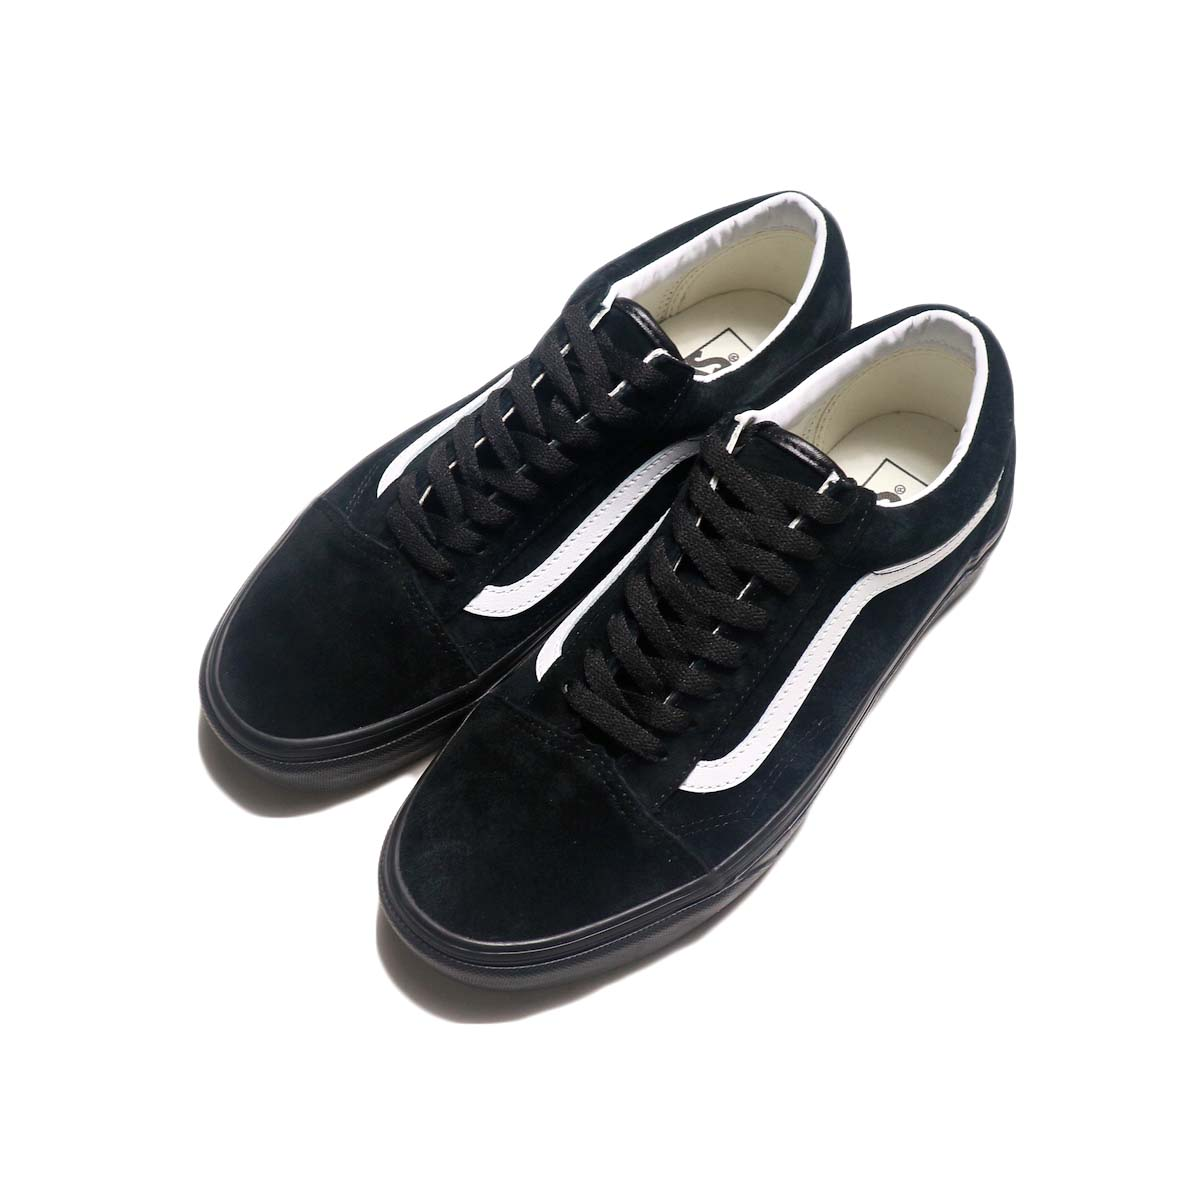 VANS / OLD SKOOL (Piq Suede) (Black) 全体像